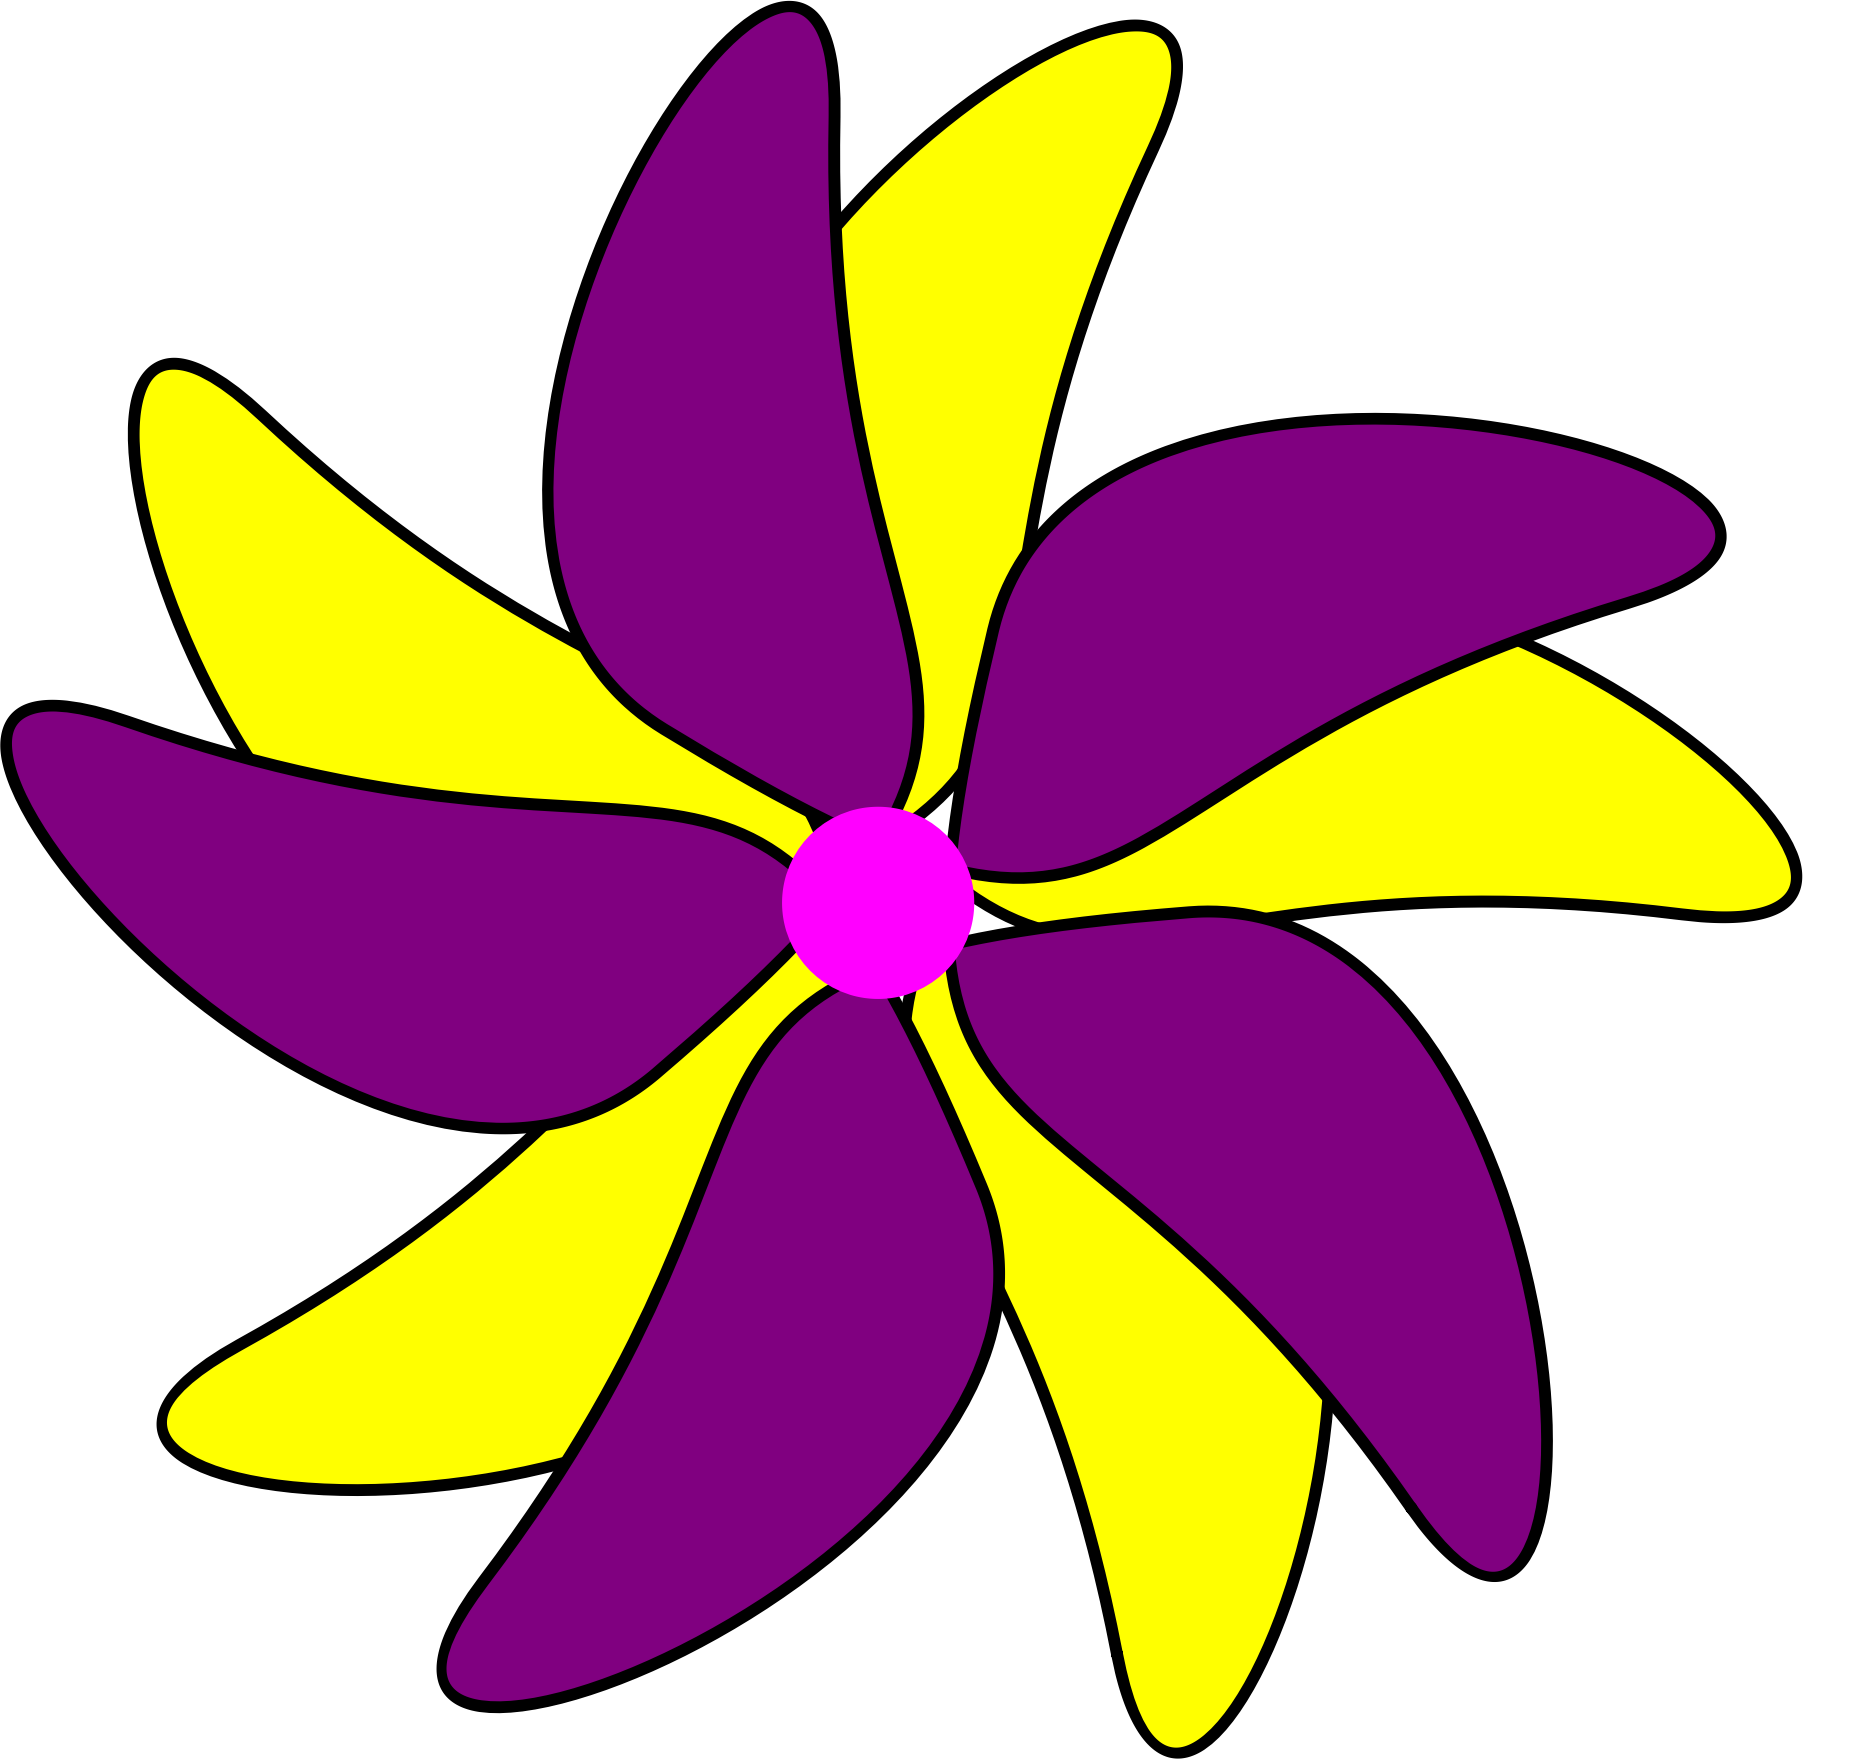 Yellow Flower clipart purple flower Yellow Clipart and Flower Flower